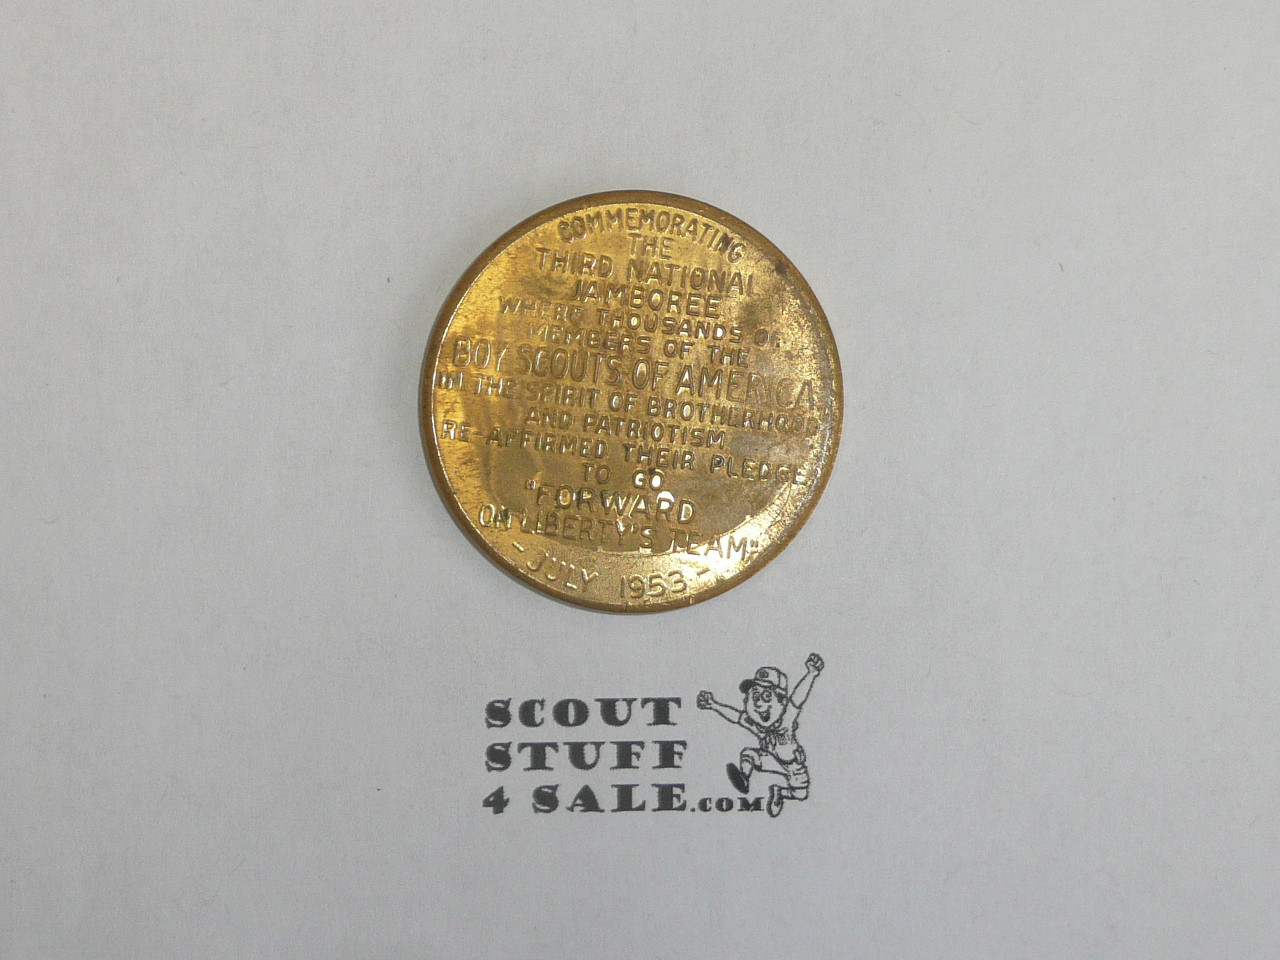 1953 National Jamboree Coin / Token Gold Color, worn